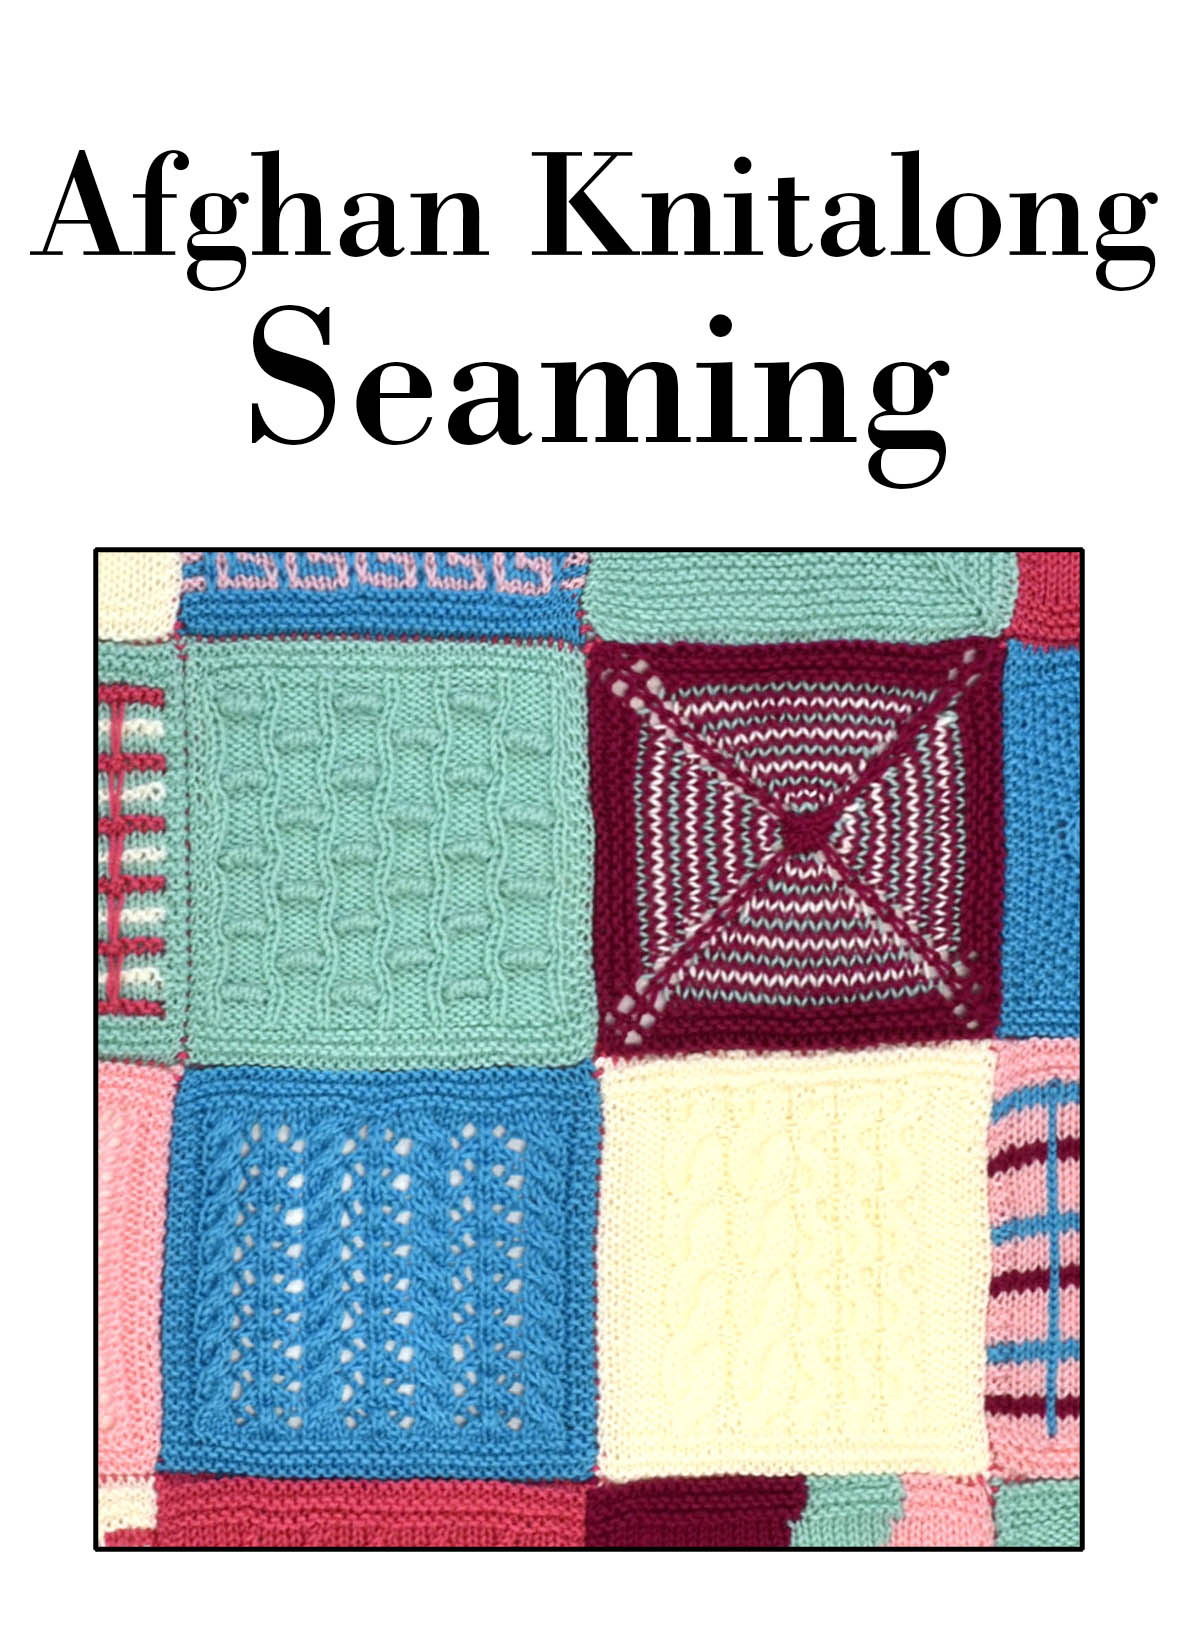 21 Afghan Knitalong Seaming 1_blog